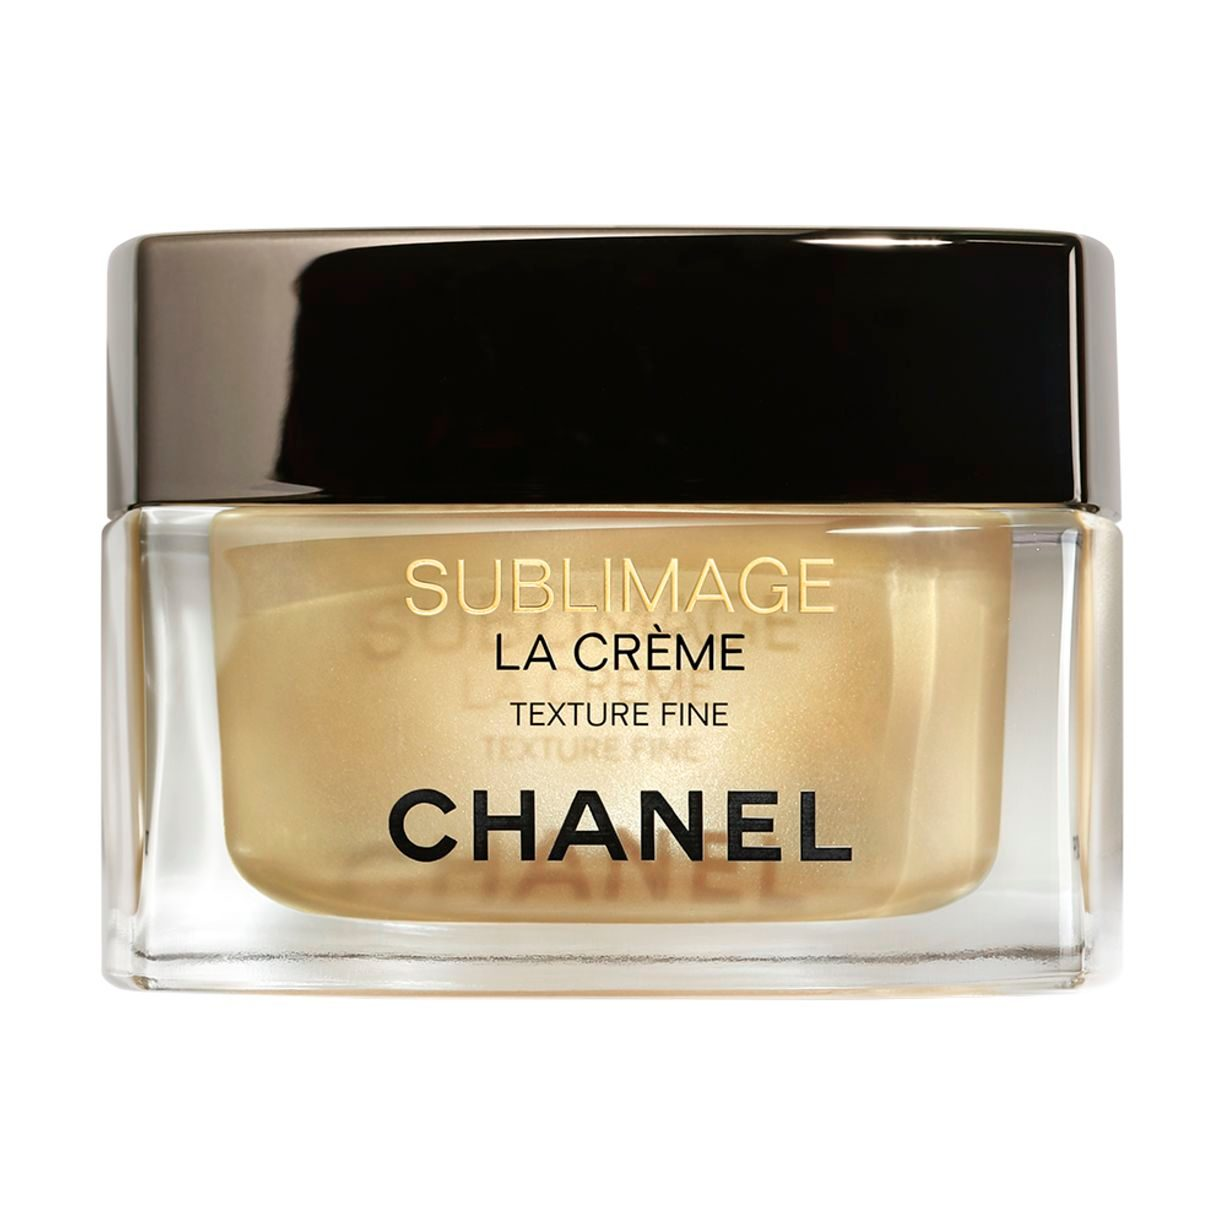 SUBLIMAGE LA CRÈME ULTIMATE SKIN REVITALISATION - TEXTURE FINE 50g